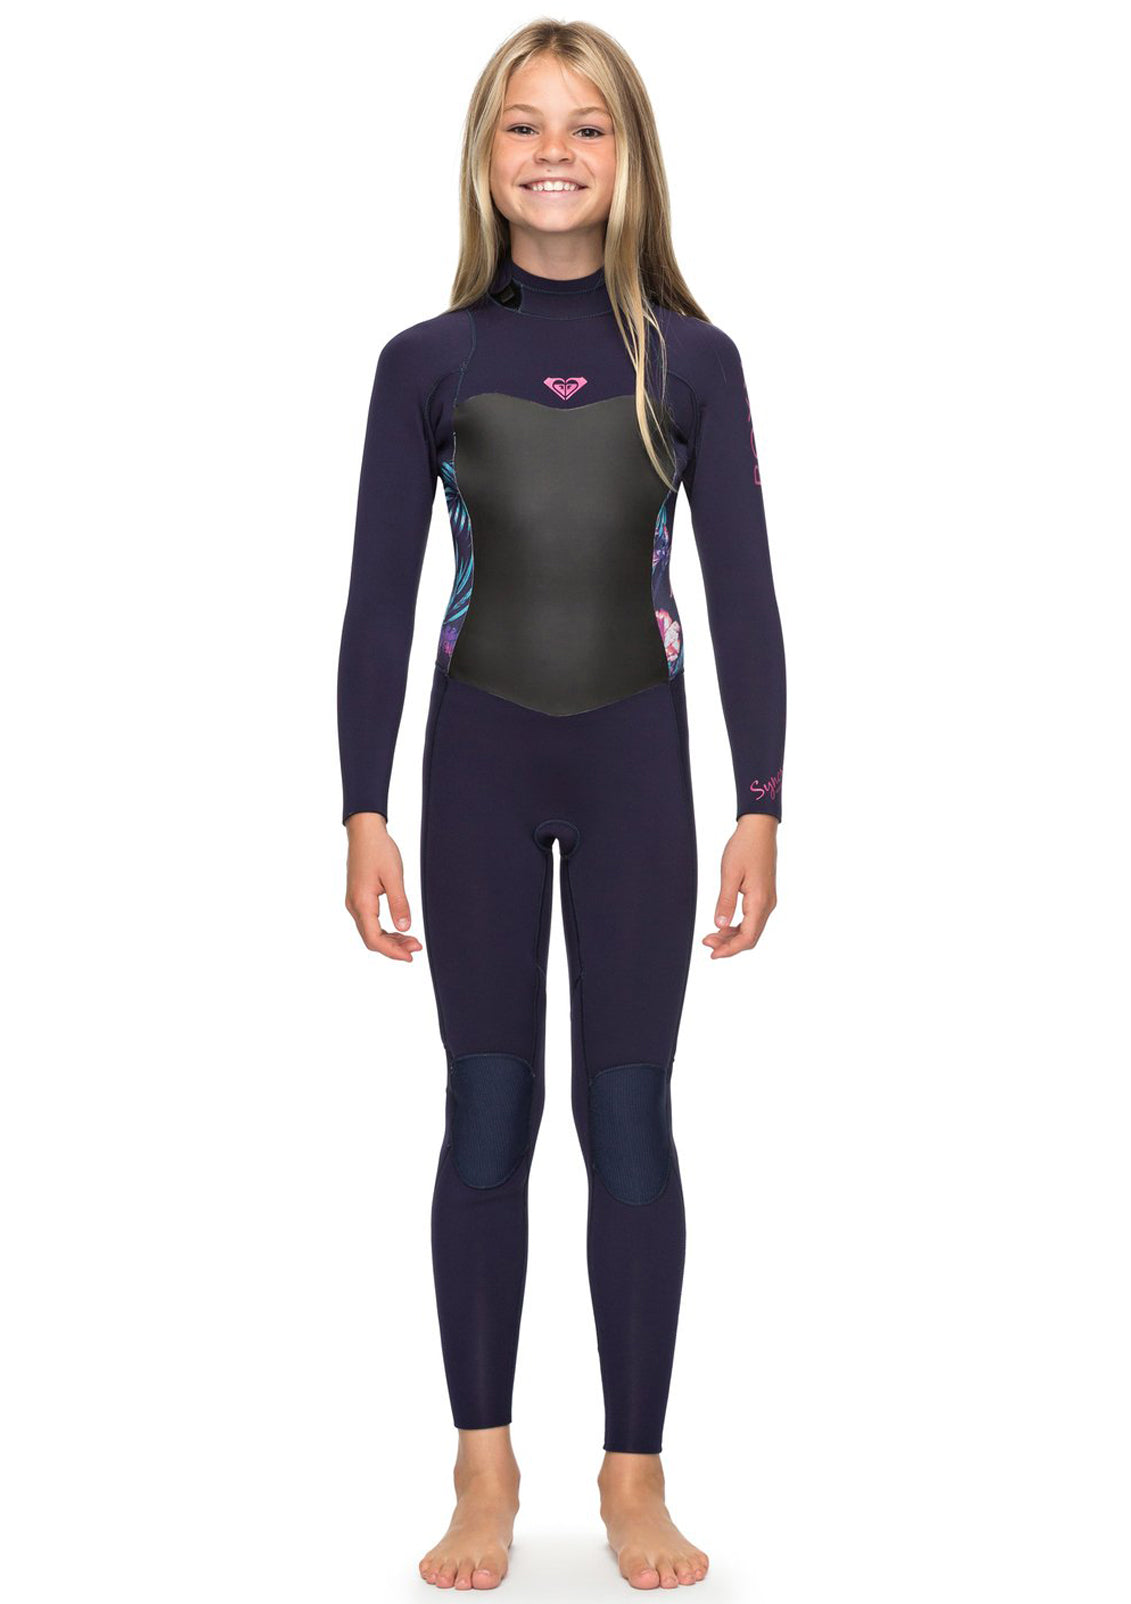 Roxy Girls 4/3 Syncro Series Back Zip GBS Wetsuit